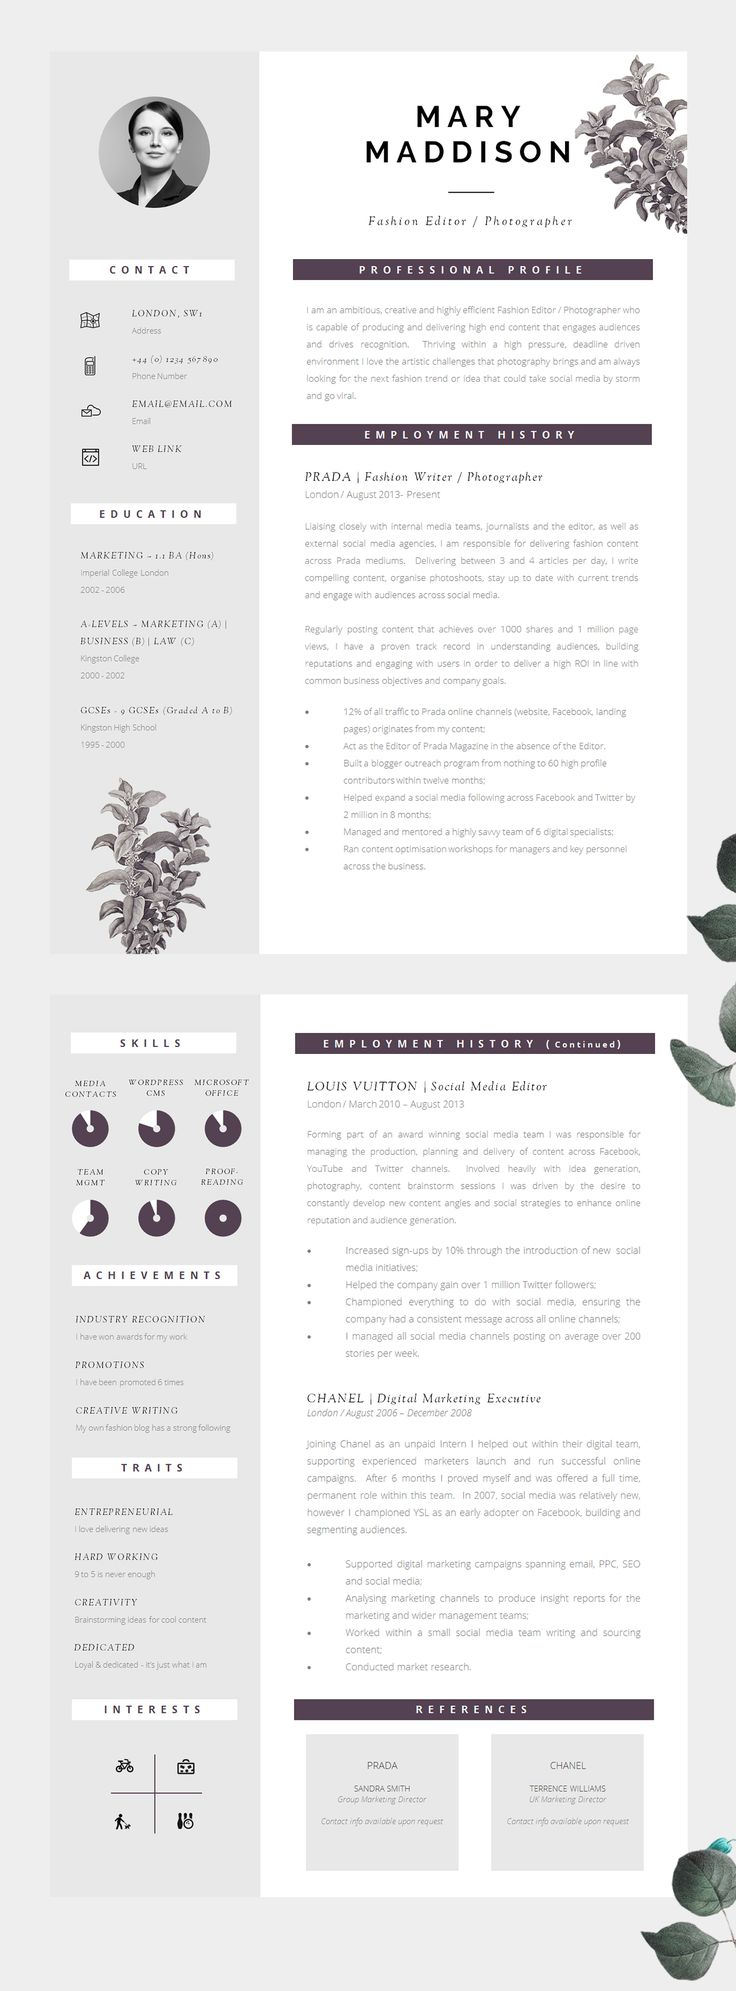 Comfortable 1 Page Resume Format Download Thick 1 Page Resume Or 2 Solid 1 Year Experience Java Resume Format 11x17 Graph Paper Template Old 15 Year Old Funny Resume Fresh15 Year Old Student Resume 25  Best Ideas About Professional Resume Design On Pinterest ..